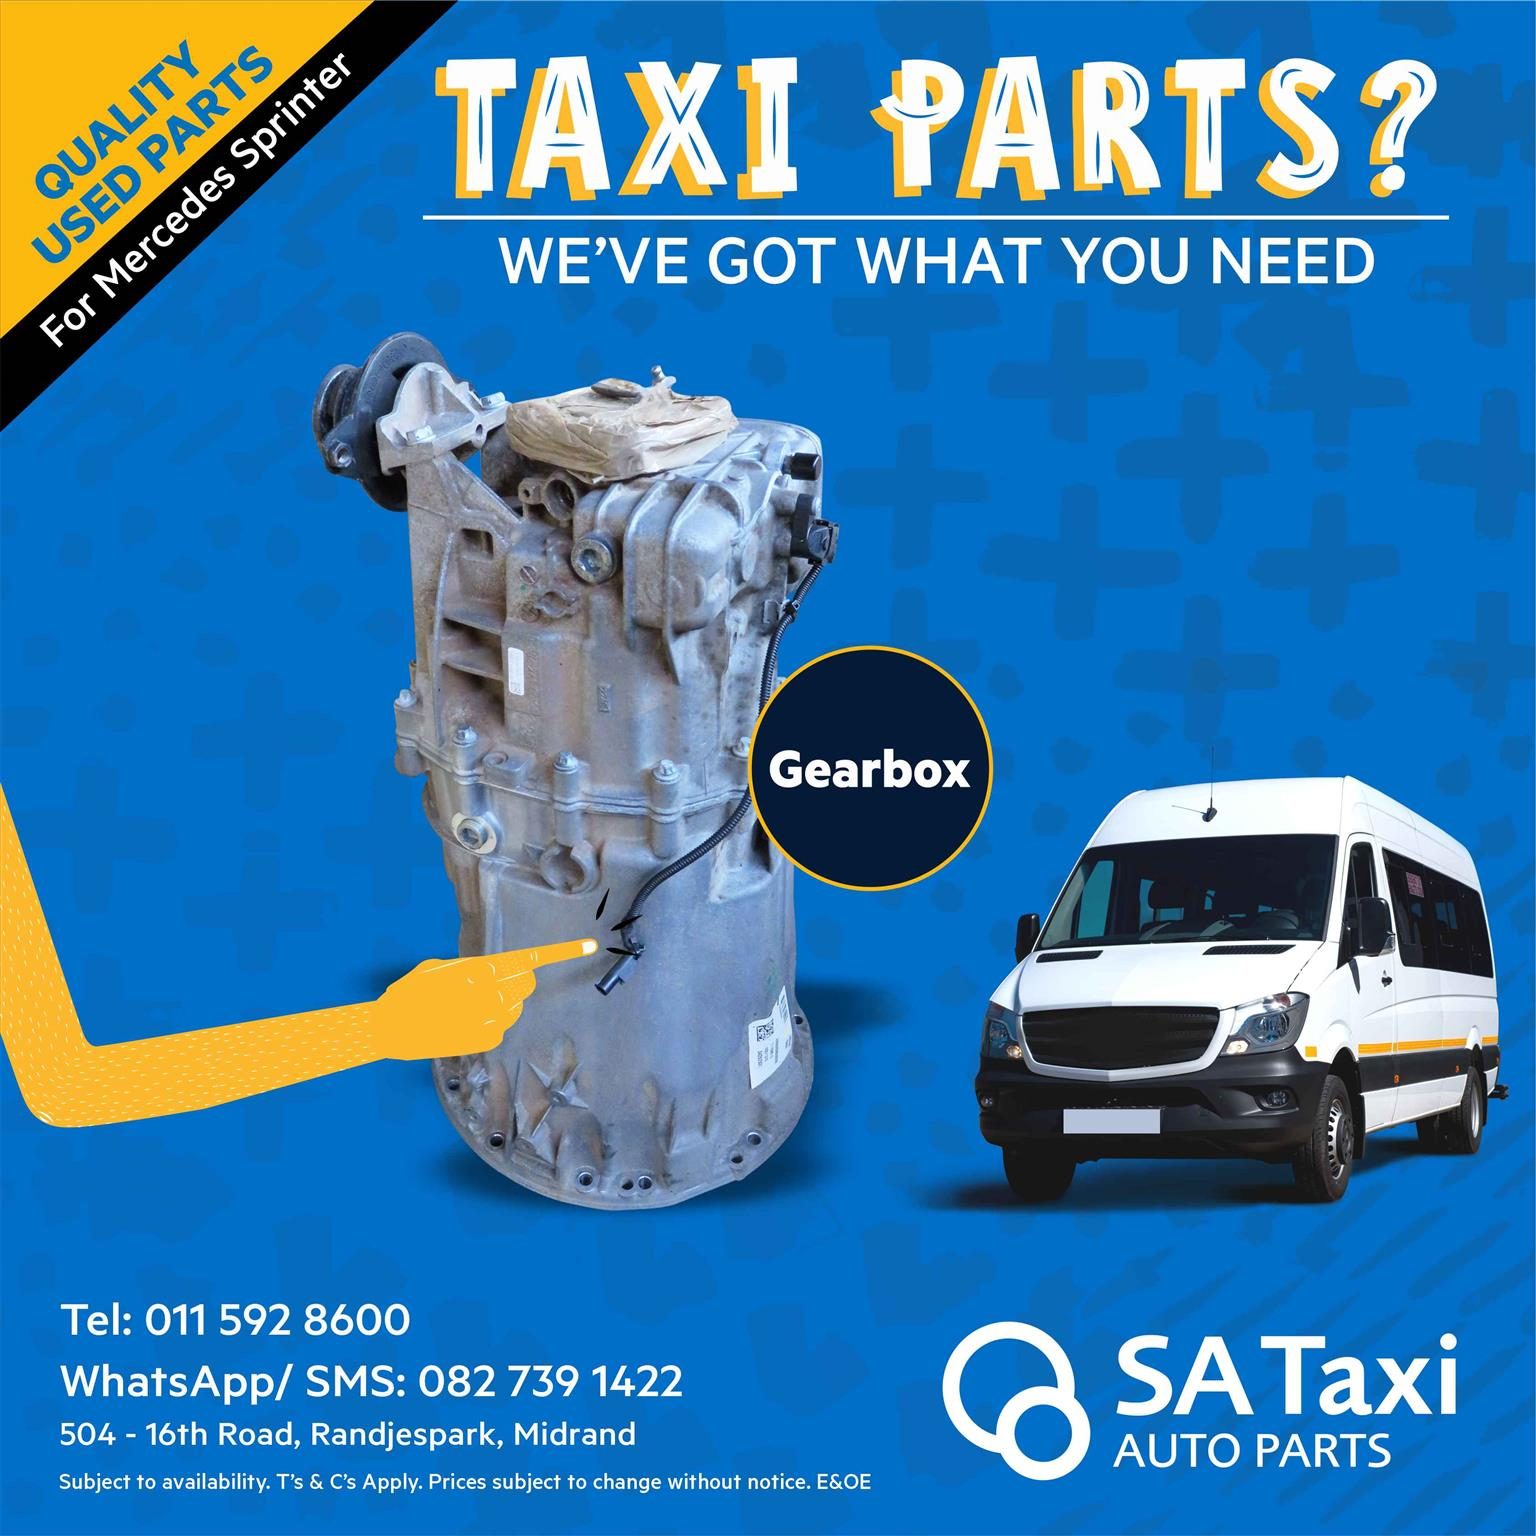 Manual Gearbox suitable for Mercedes Sprinter 518 /519 / 515 - SA Taxi Auto Parts quality used spares